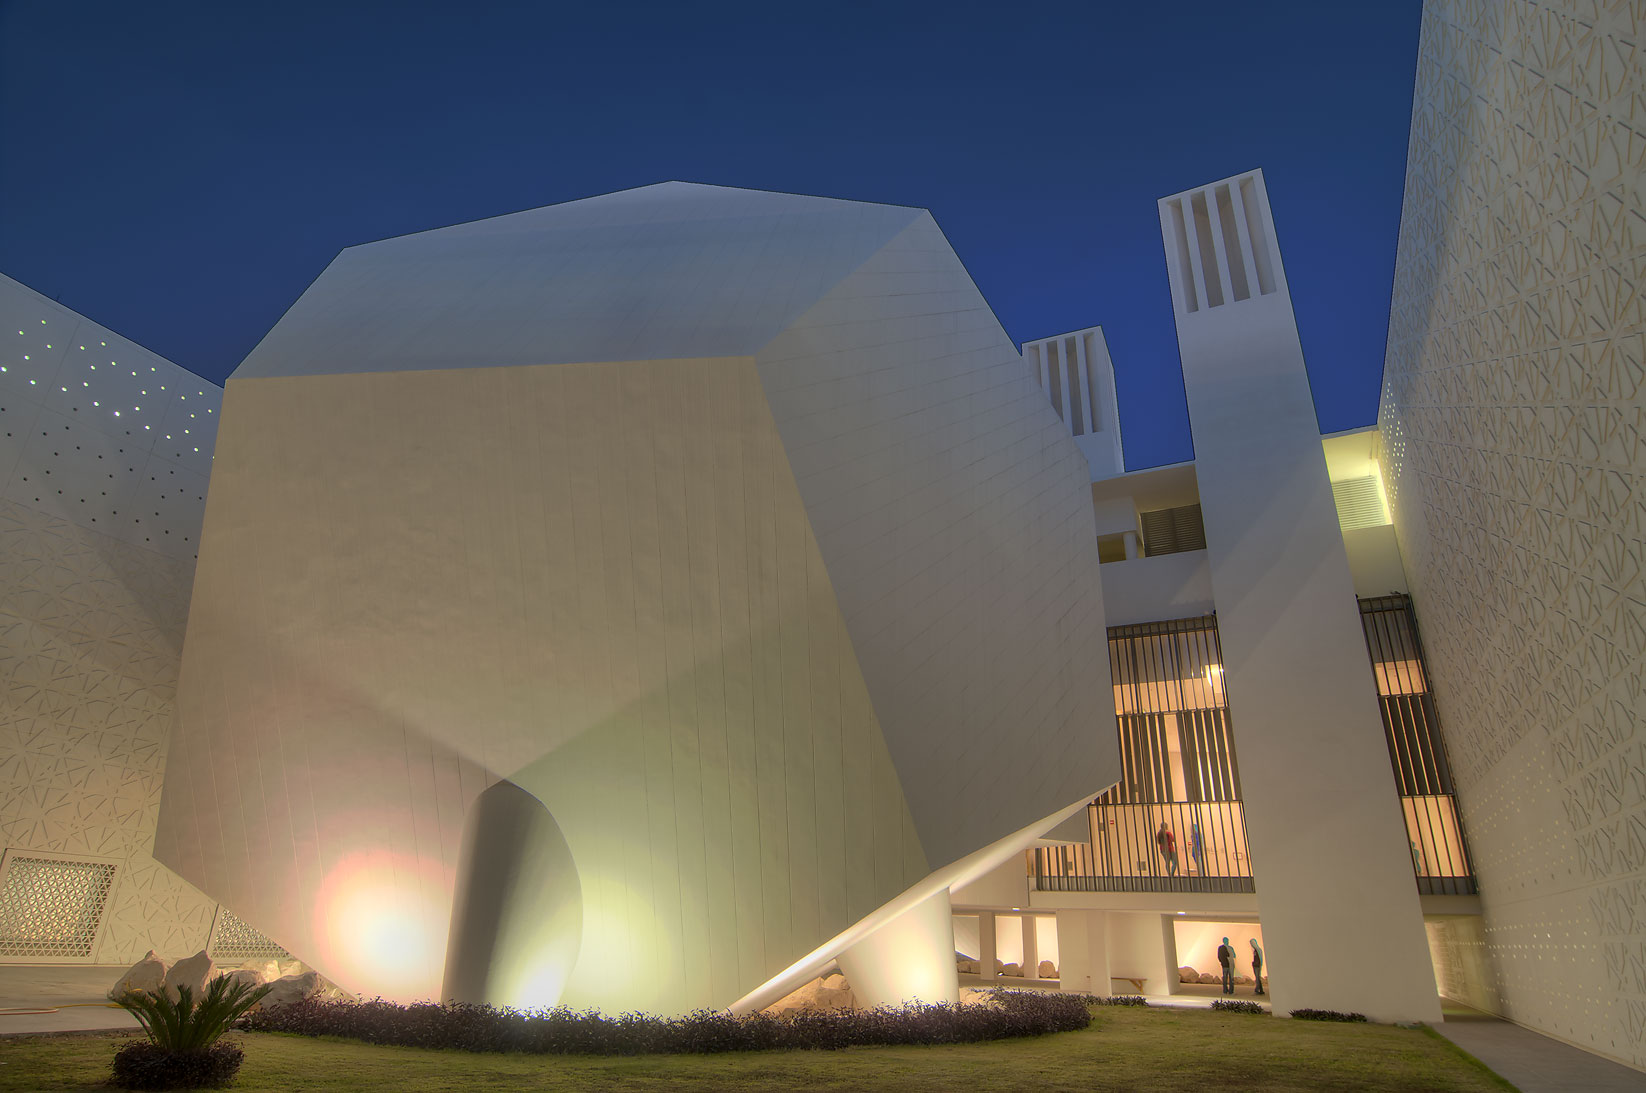 Dodecahedron lecture hall of Weill Cornell...in Education City campus. Doha, Qatar